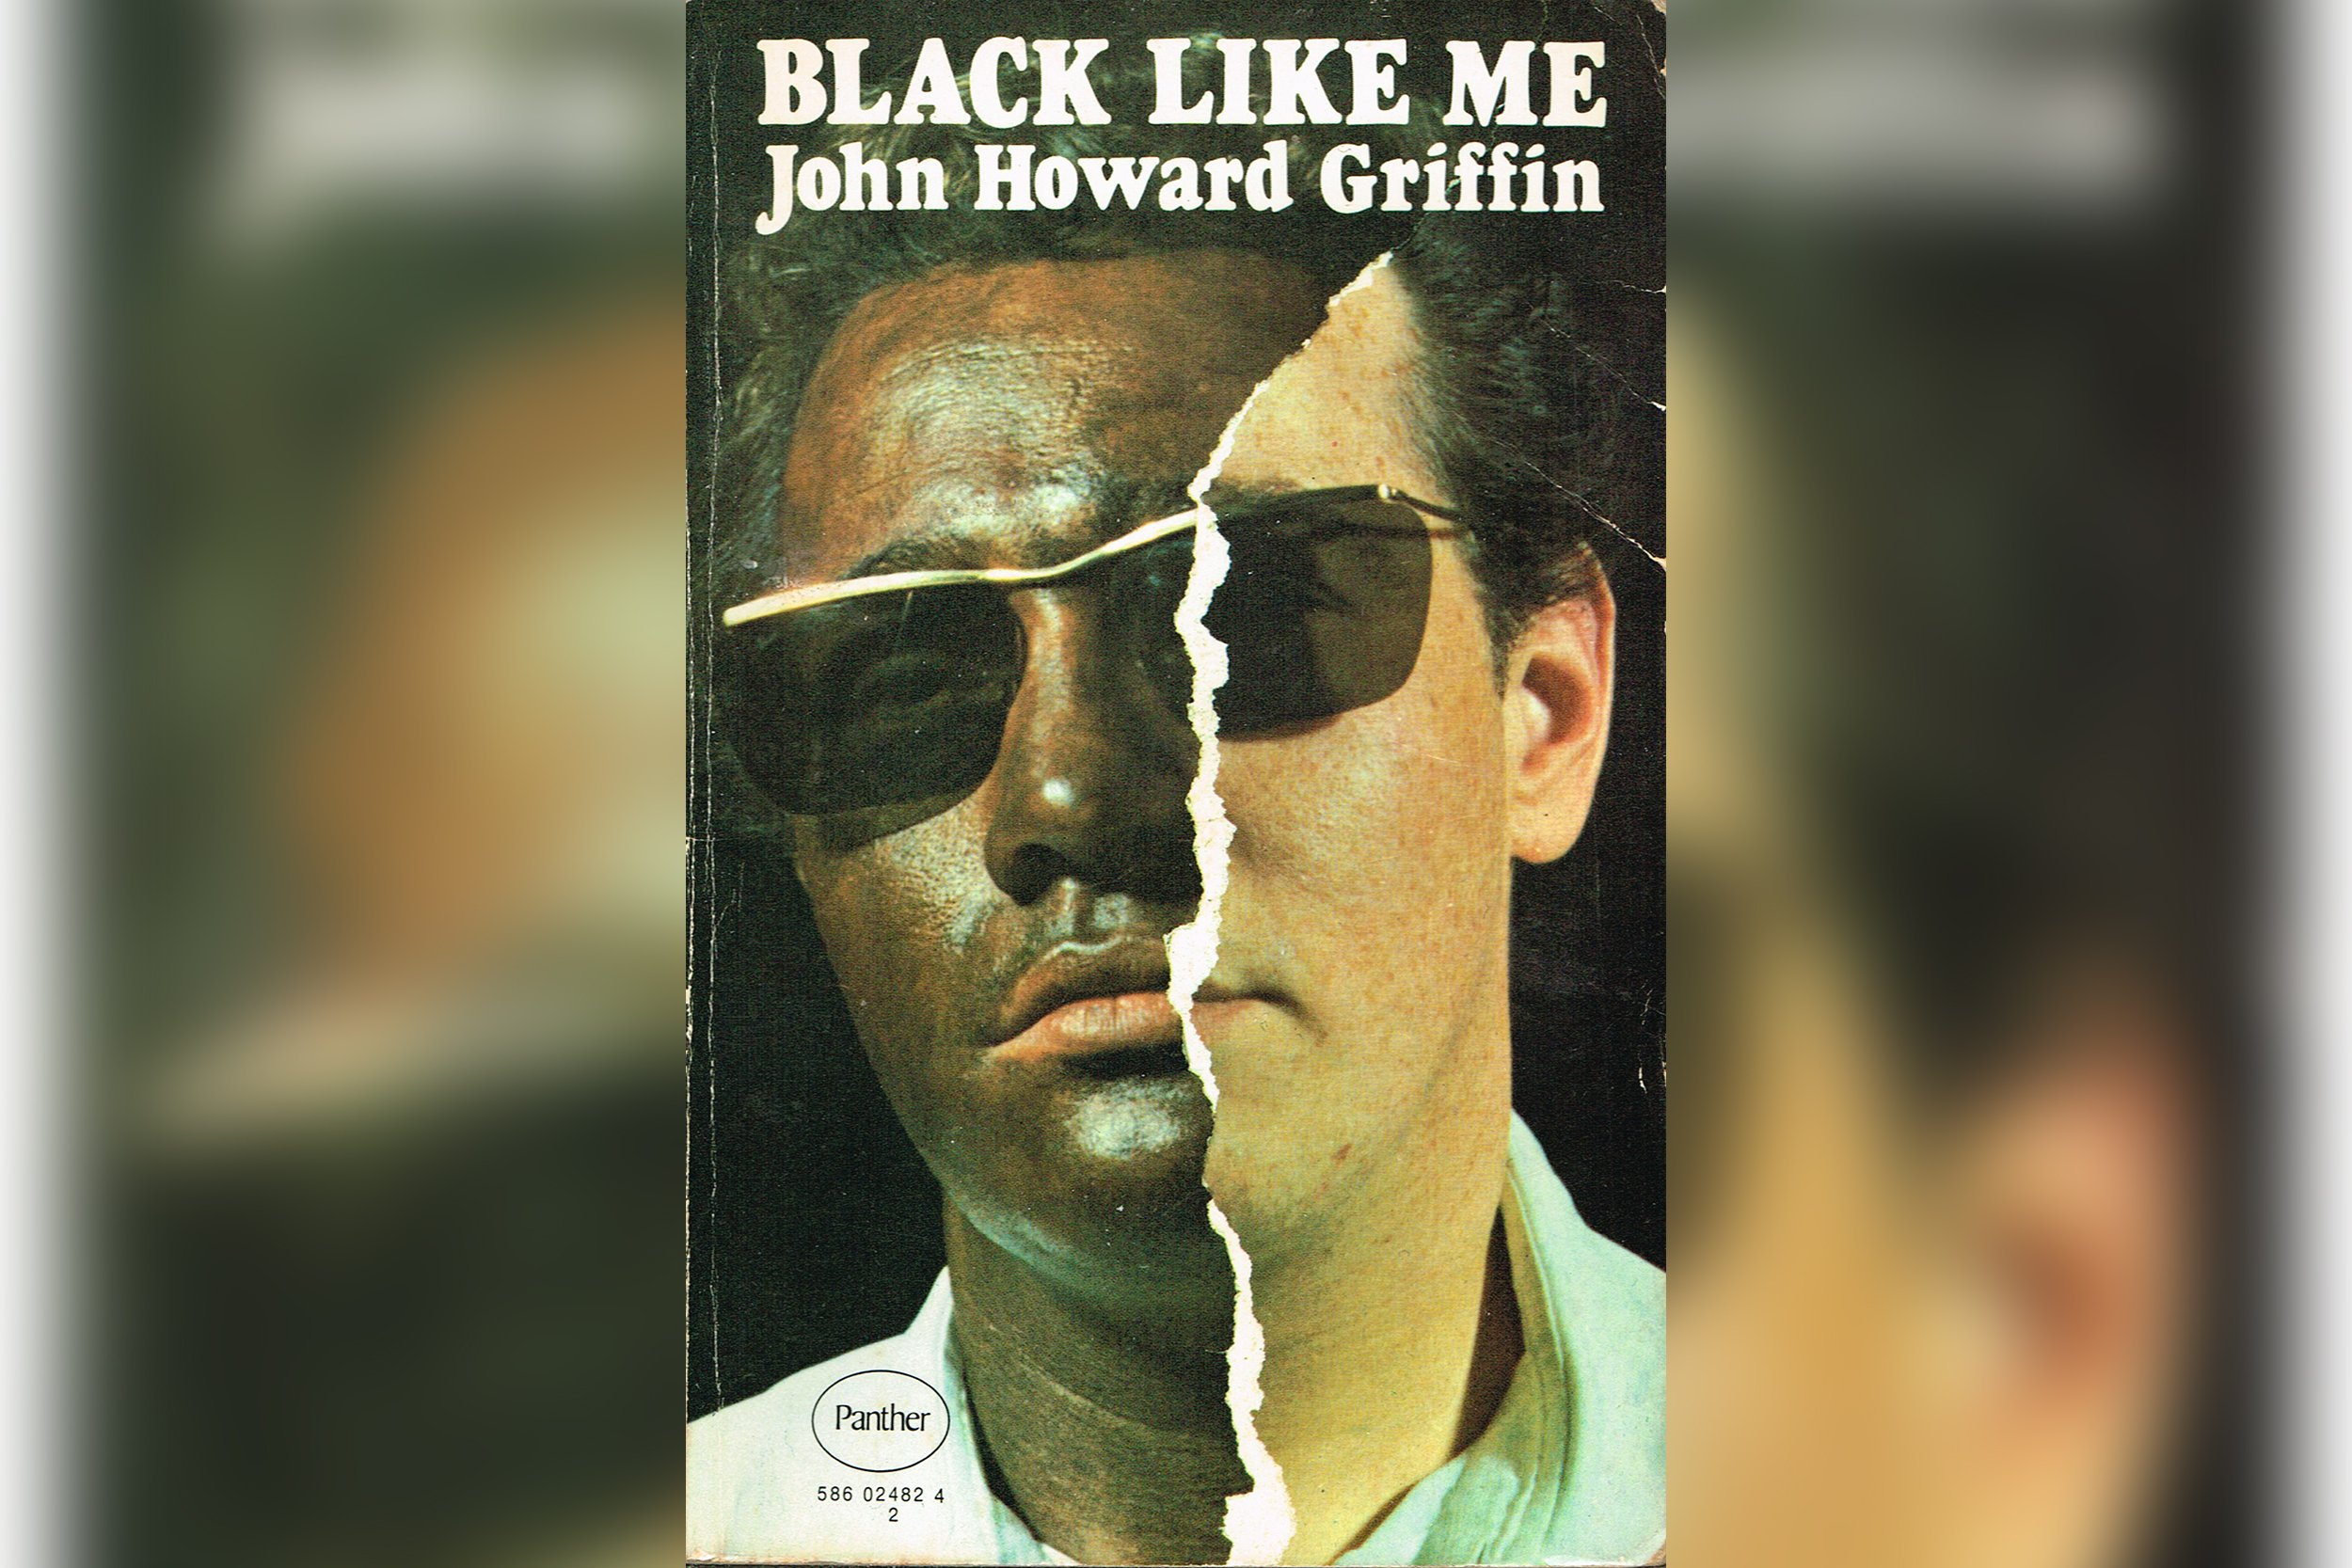 a history of john howard griffin and his book black like me Unspeakable stories and accounts are given by john howard griffin in his book black like me group theory, black authors books, black history.